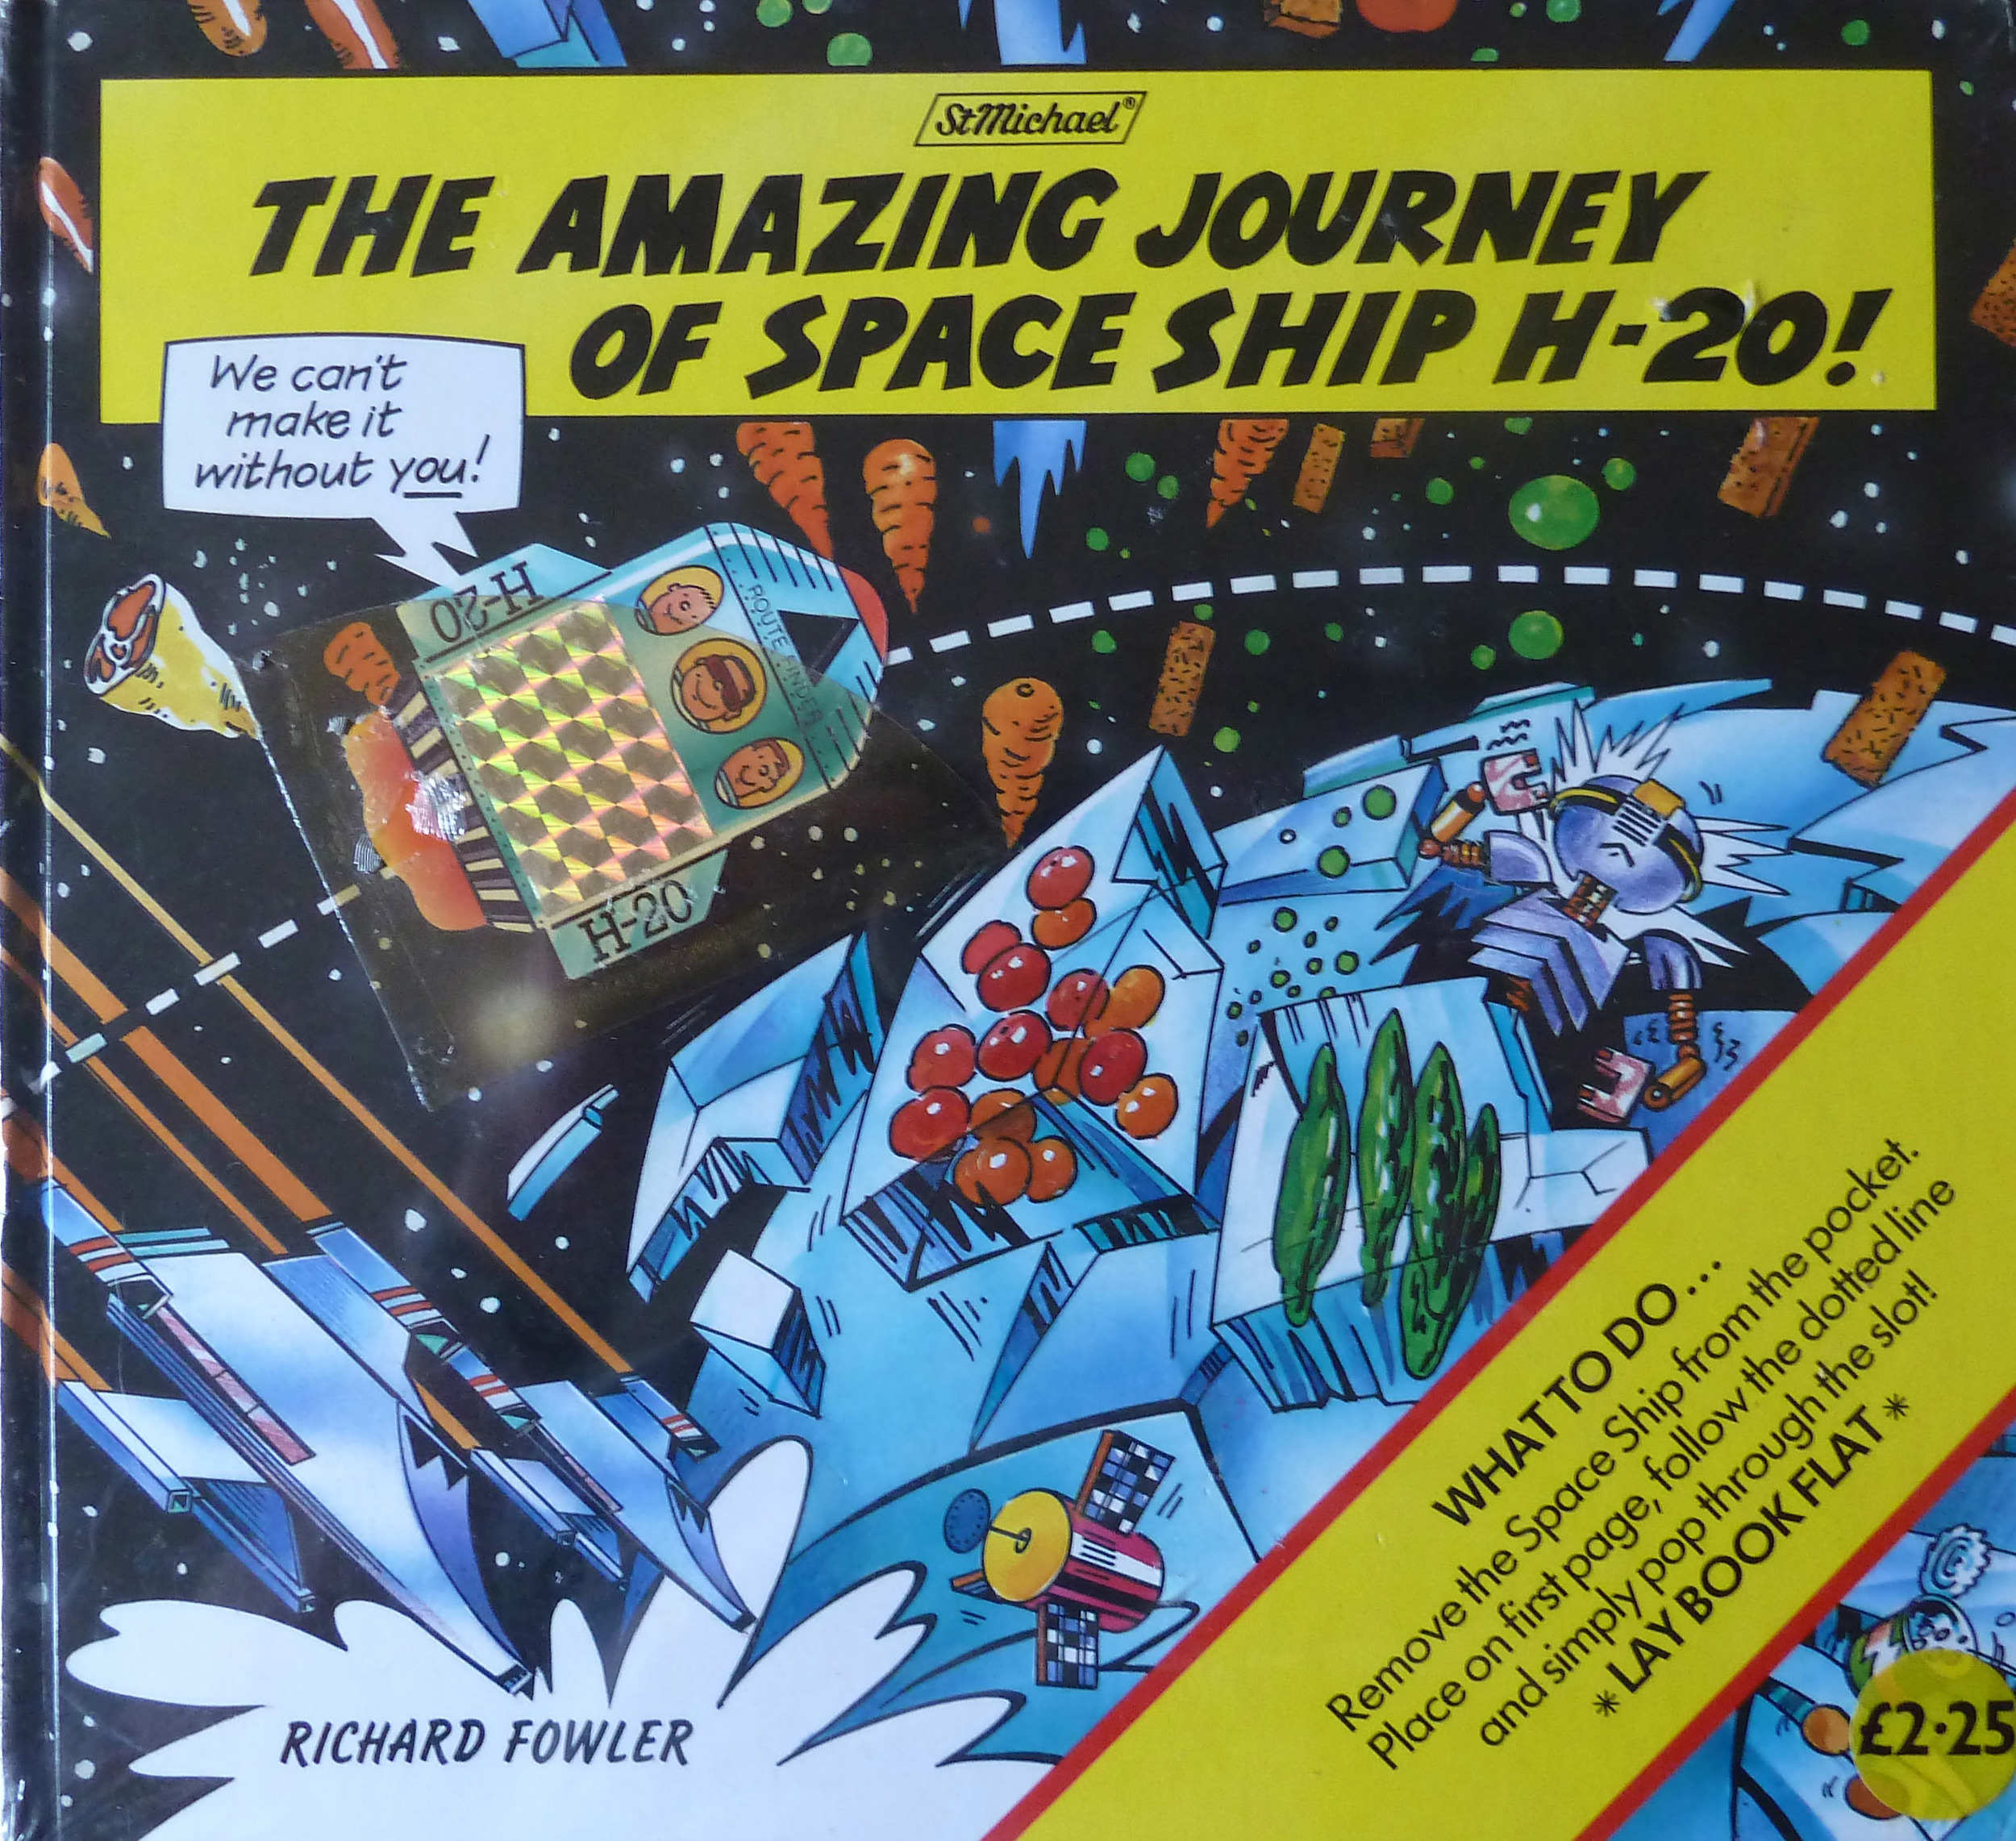 The Amazing Story of Spaceship H-20!